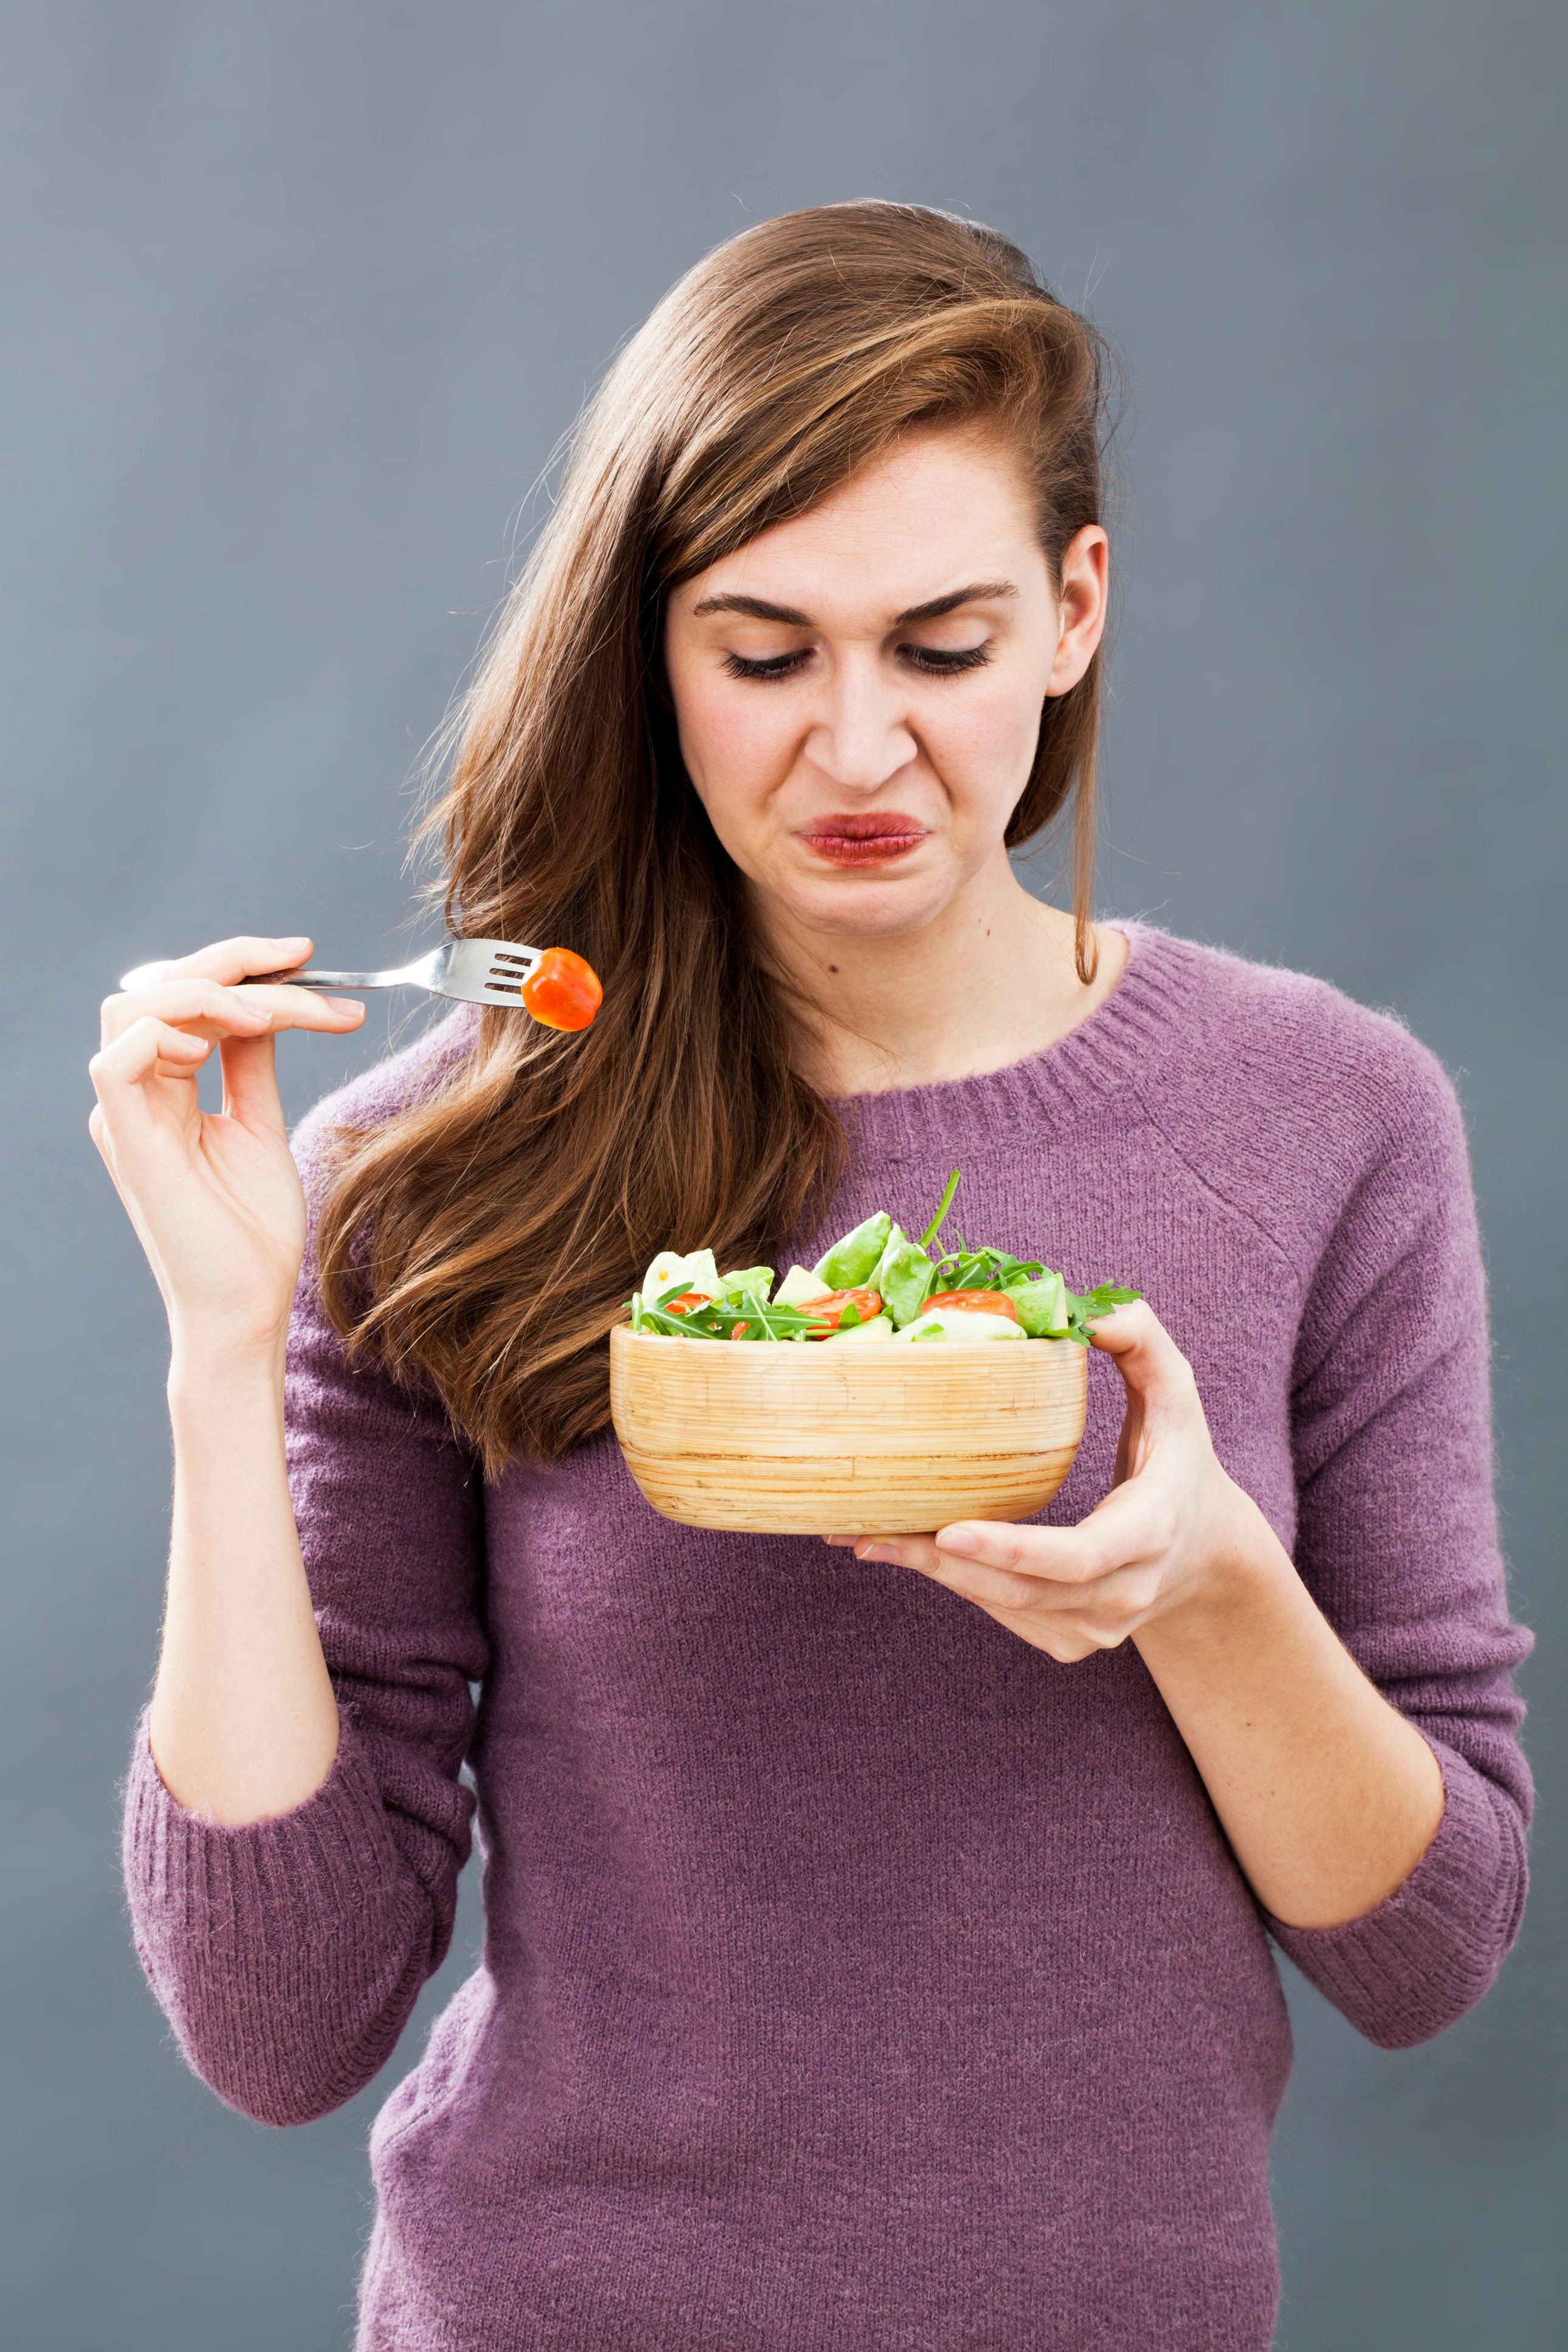 picky 20s woman developing aversion in eating raw vegetables